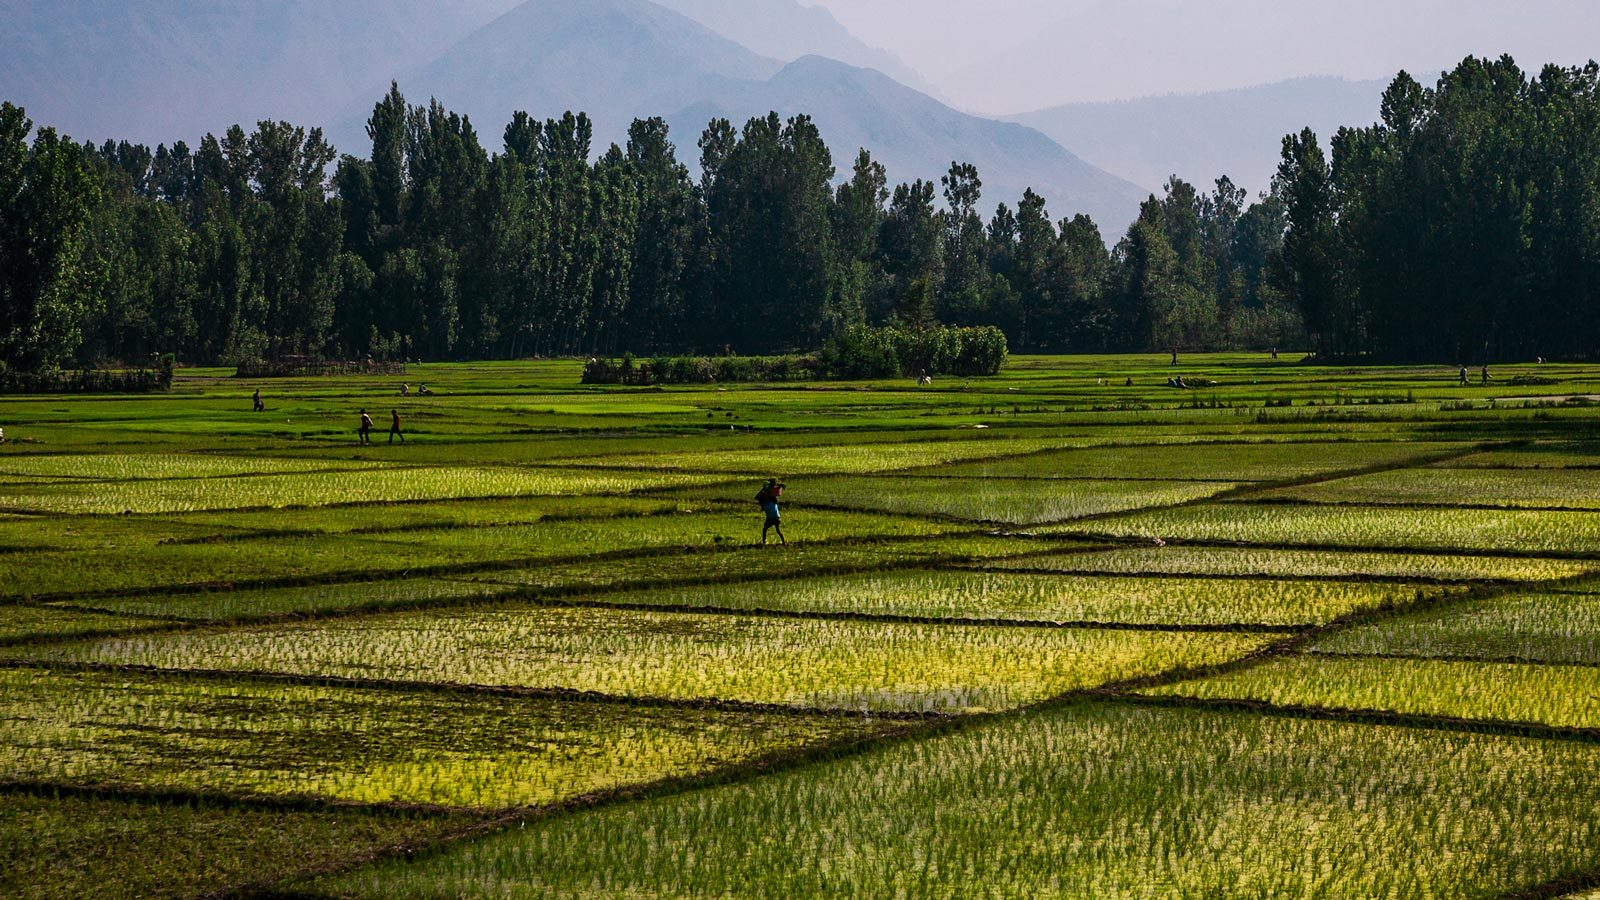 Rice paddy fields in India. Agriculture is one source of global methane emissions.